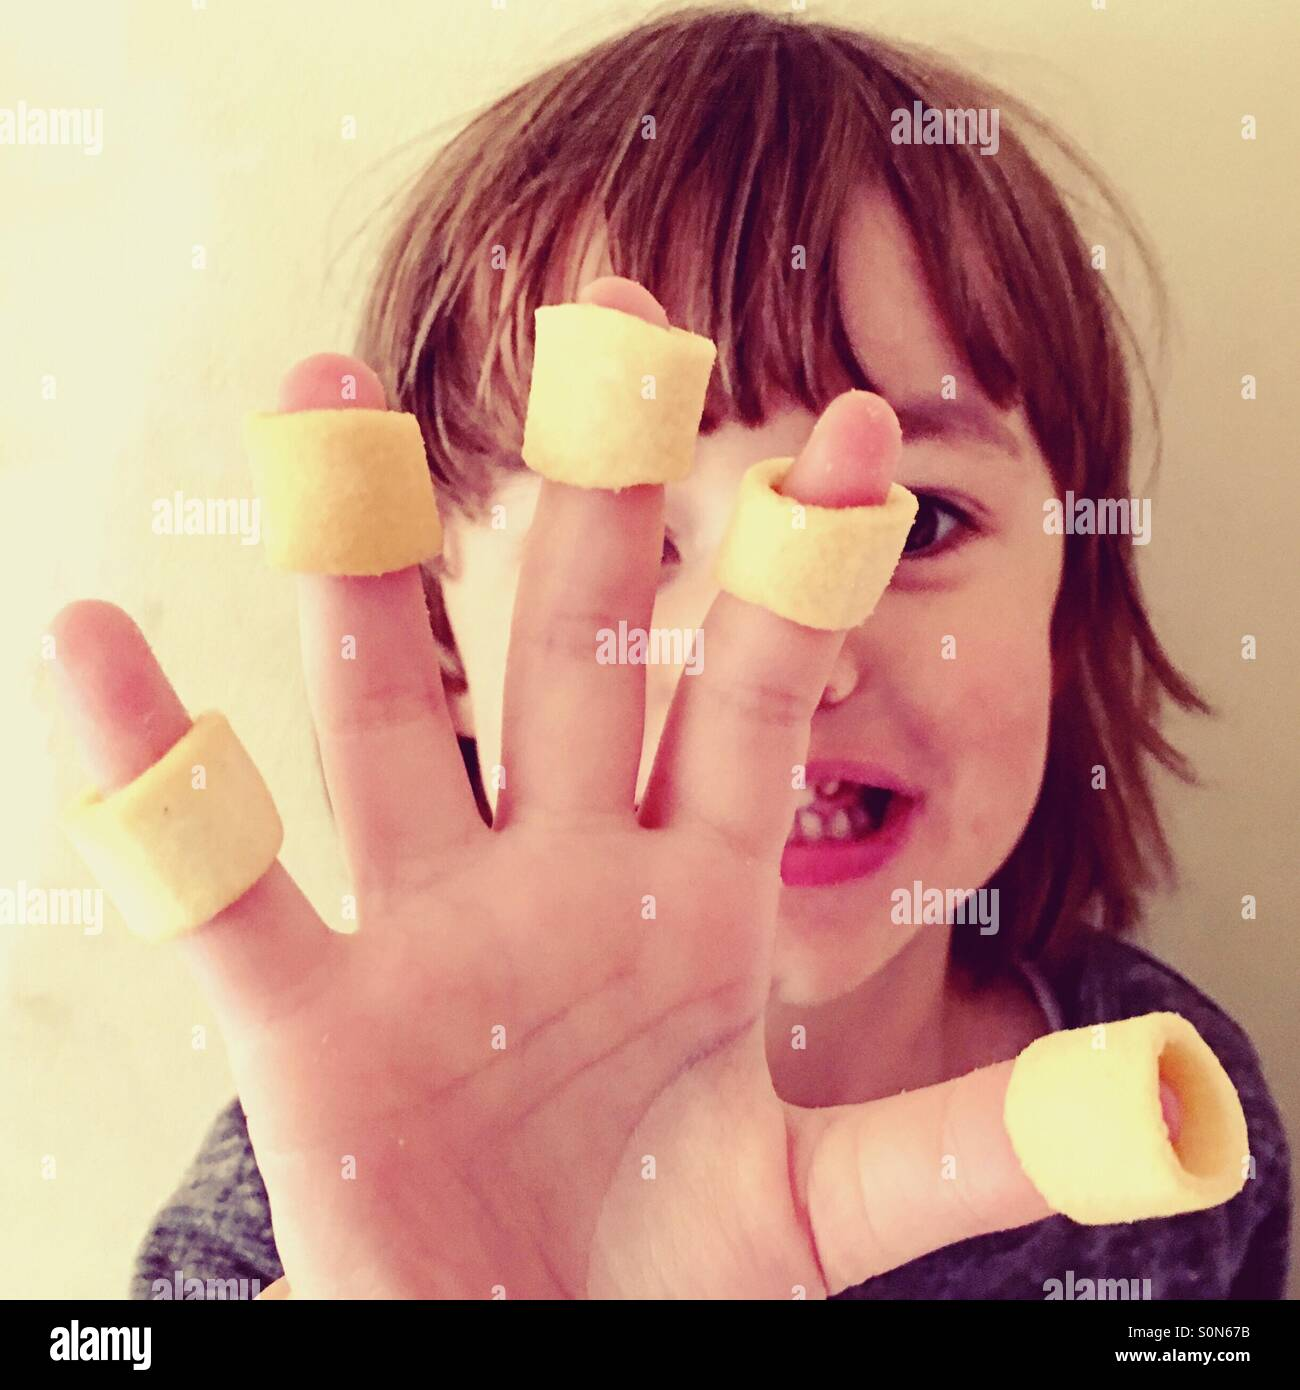 Small 4 year old boy with potato crisps on his fingers. Stock Photo